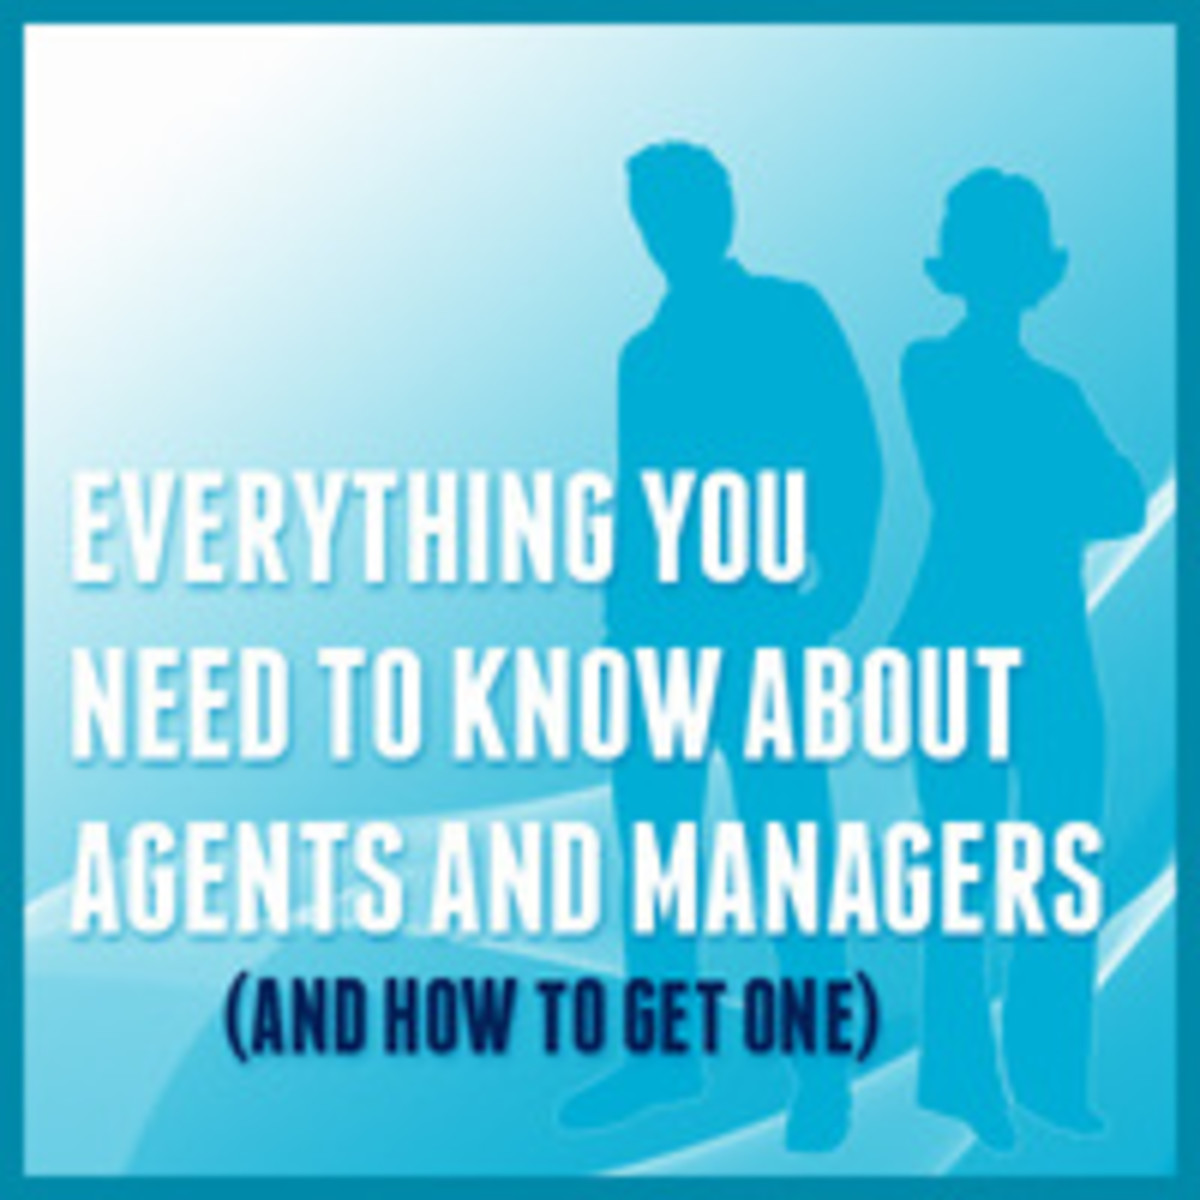 Everything You Need to Know About Agents and Managers and How to Get One